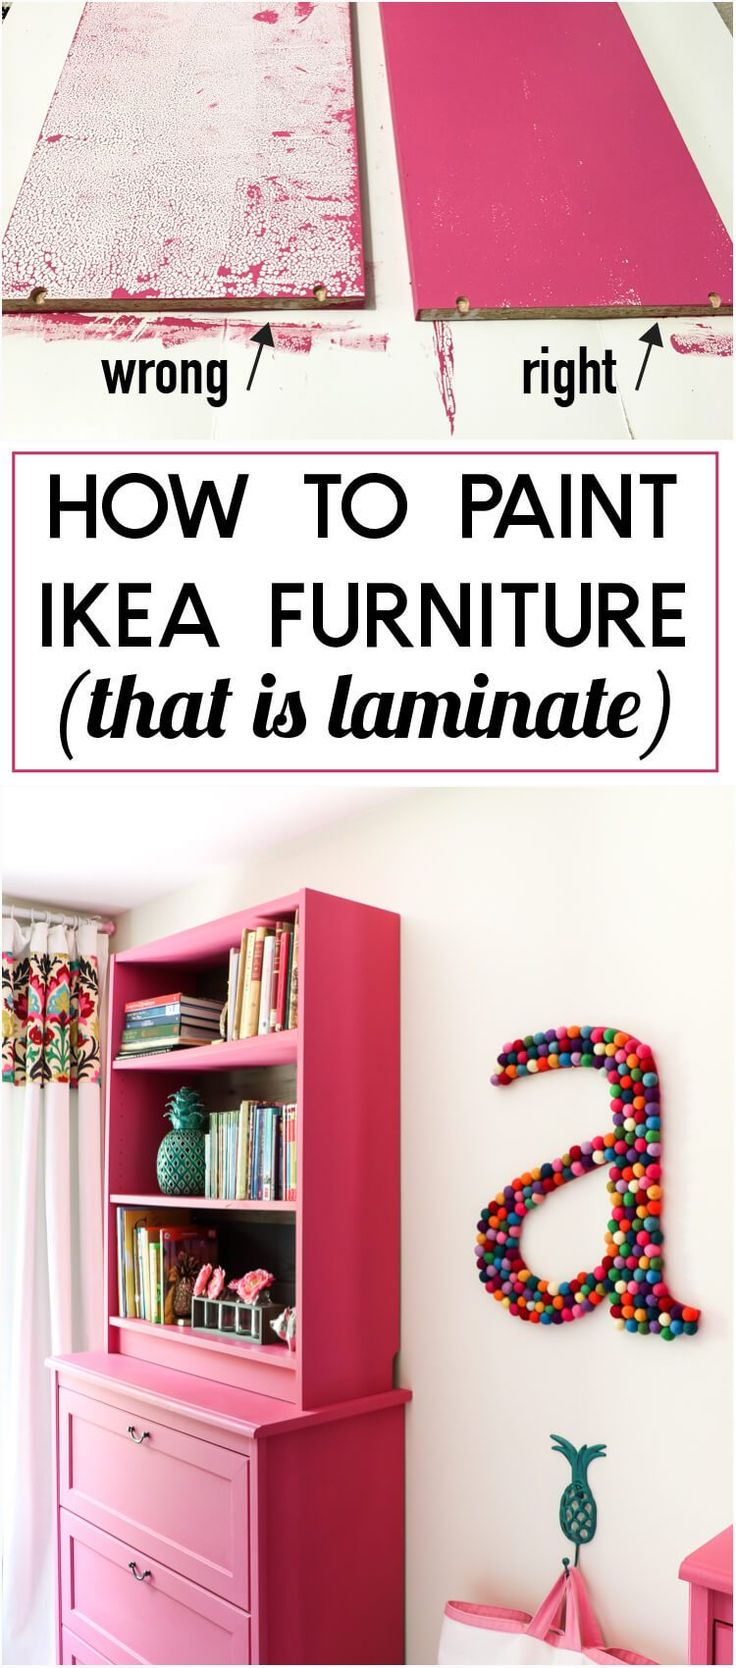 Tricks To Painting Ikea Furniture (+ What Not To Do)